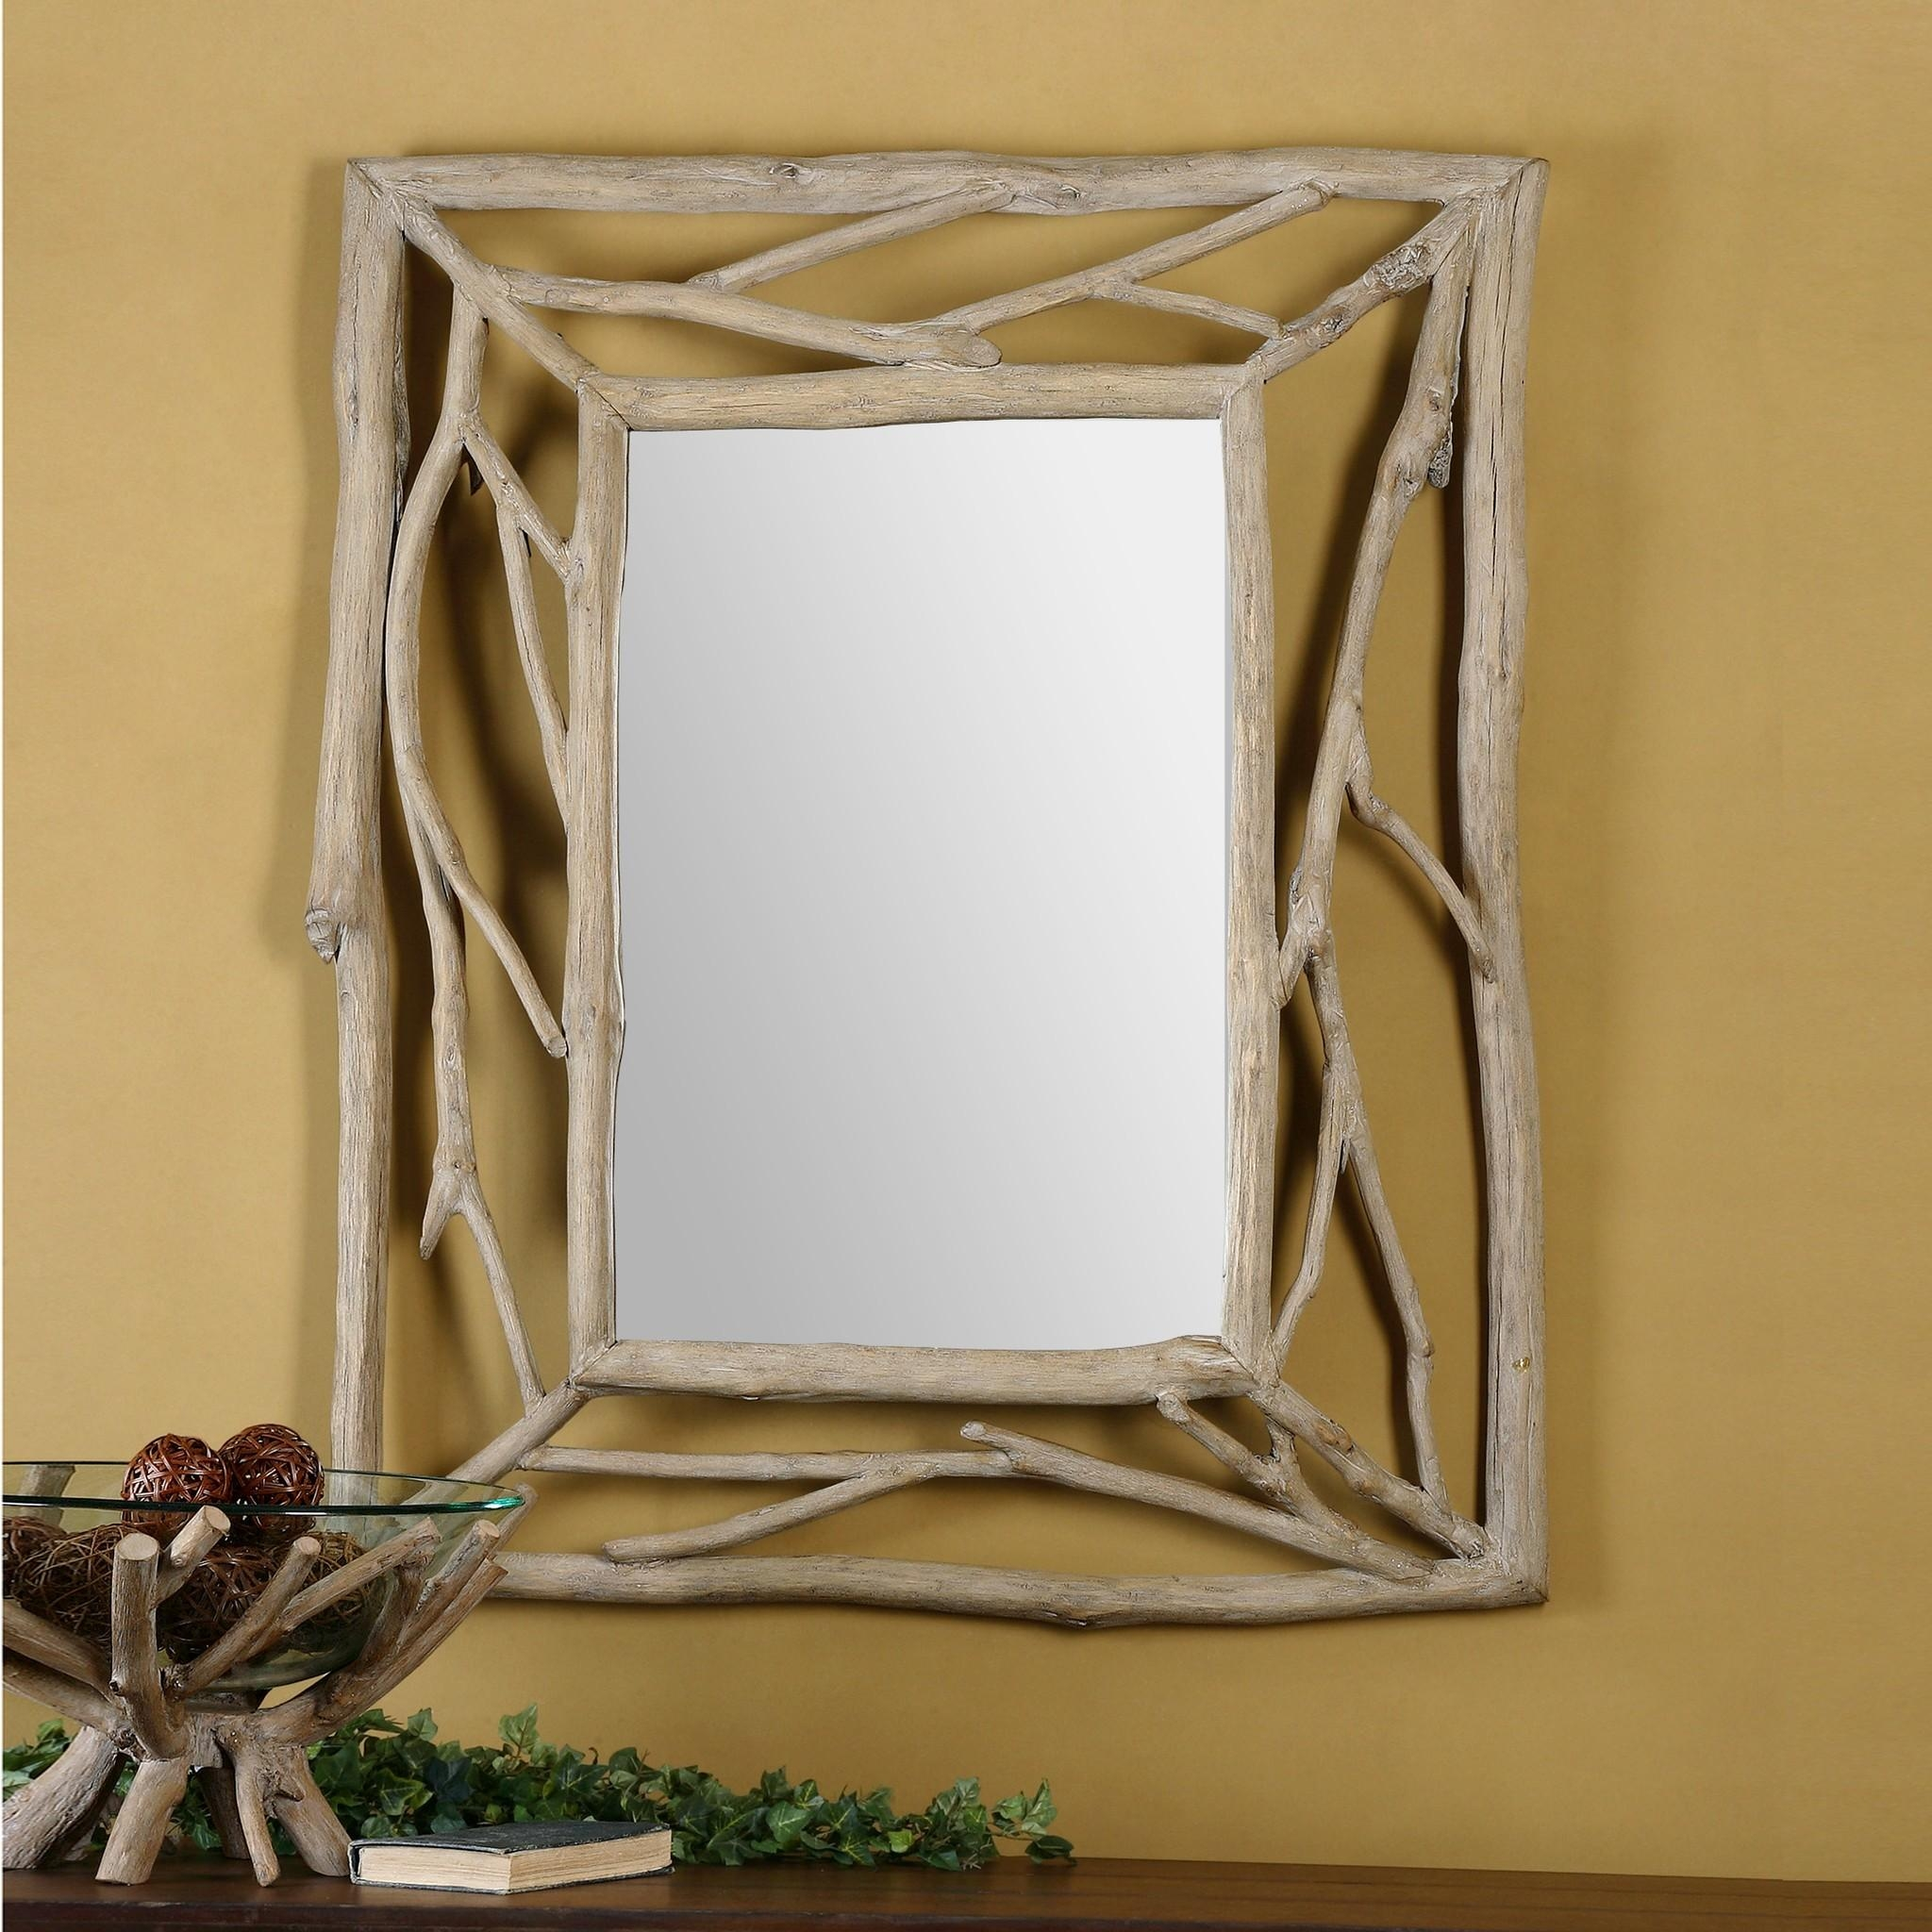 Natural Wooden Branch As The Frame With Rectangle Mirror On The Regarding Natural Wood Framed Mirrors (View 2 of 20)